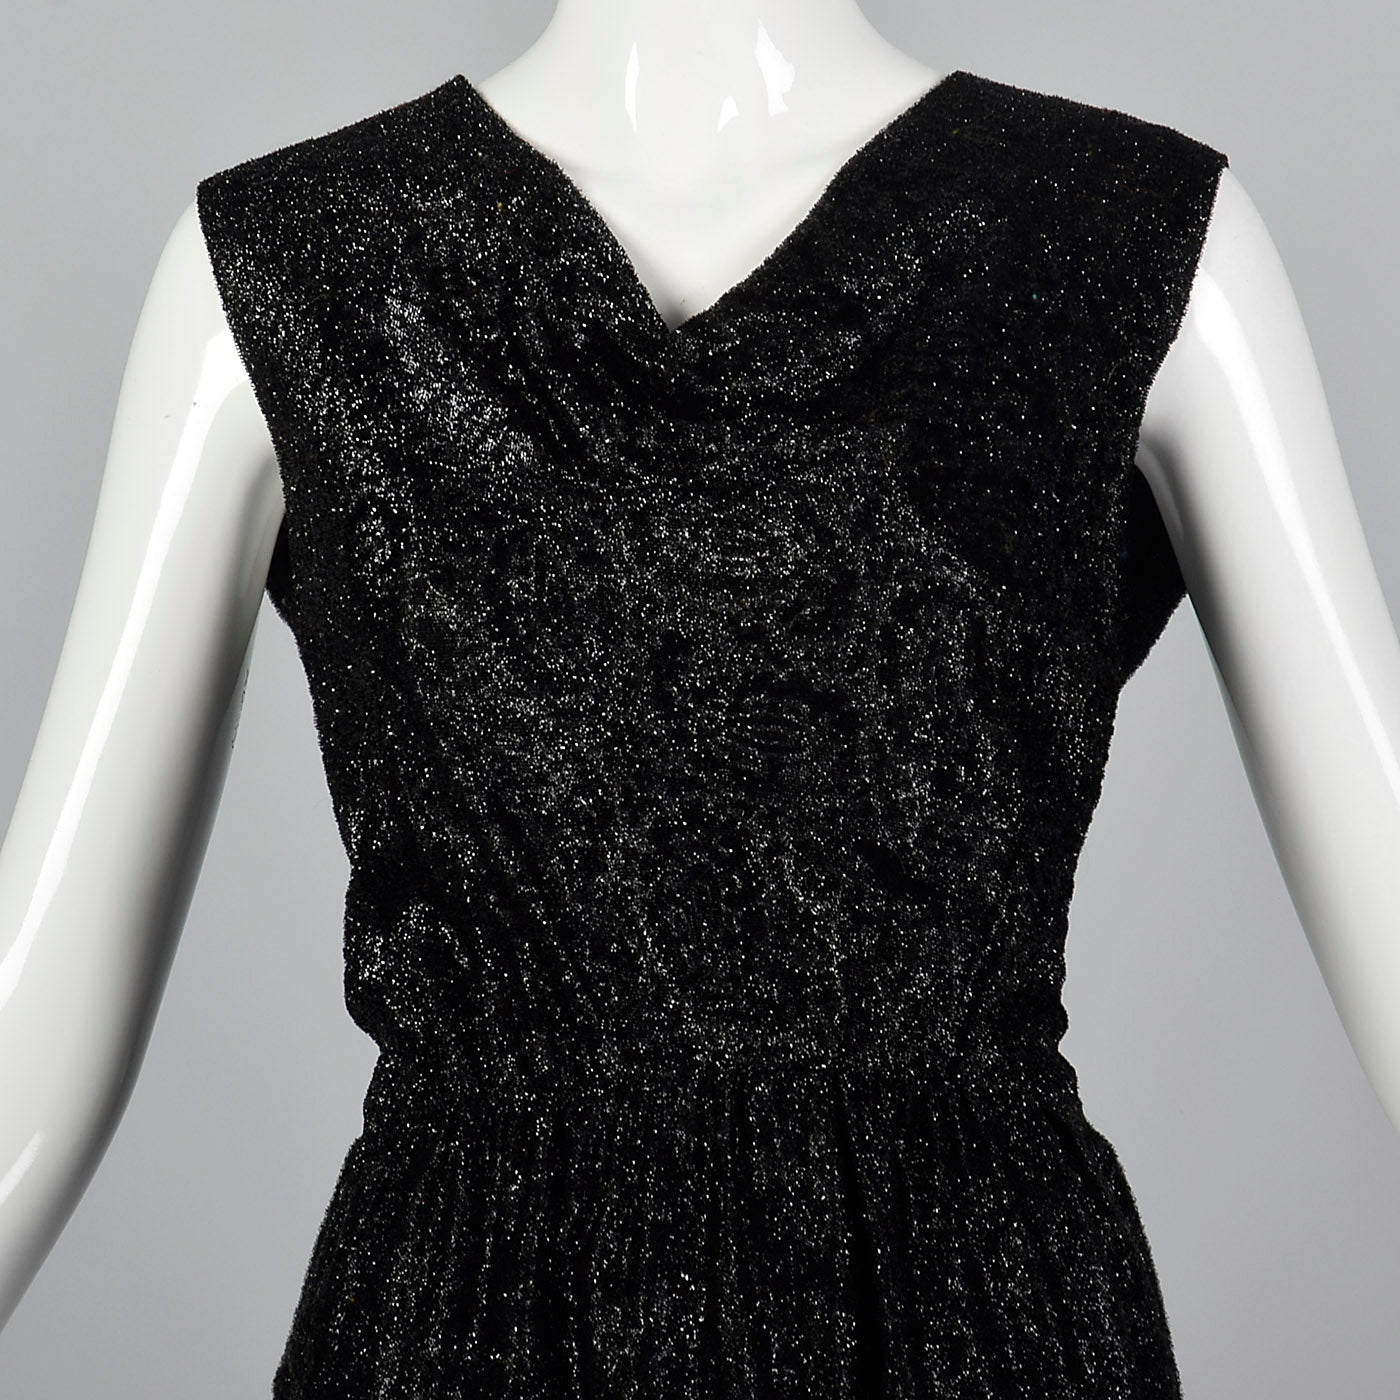 1960s Black Lurex Cocktail Dress from Marshall Field's 28 Shop